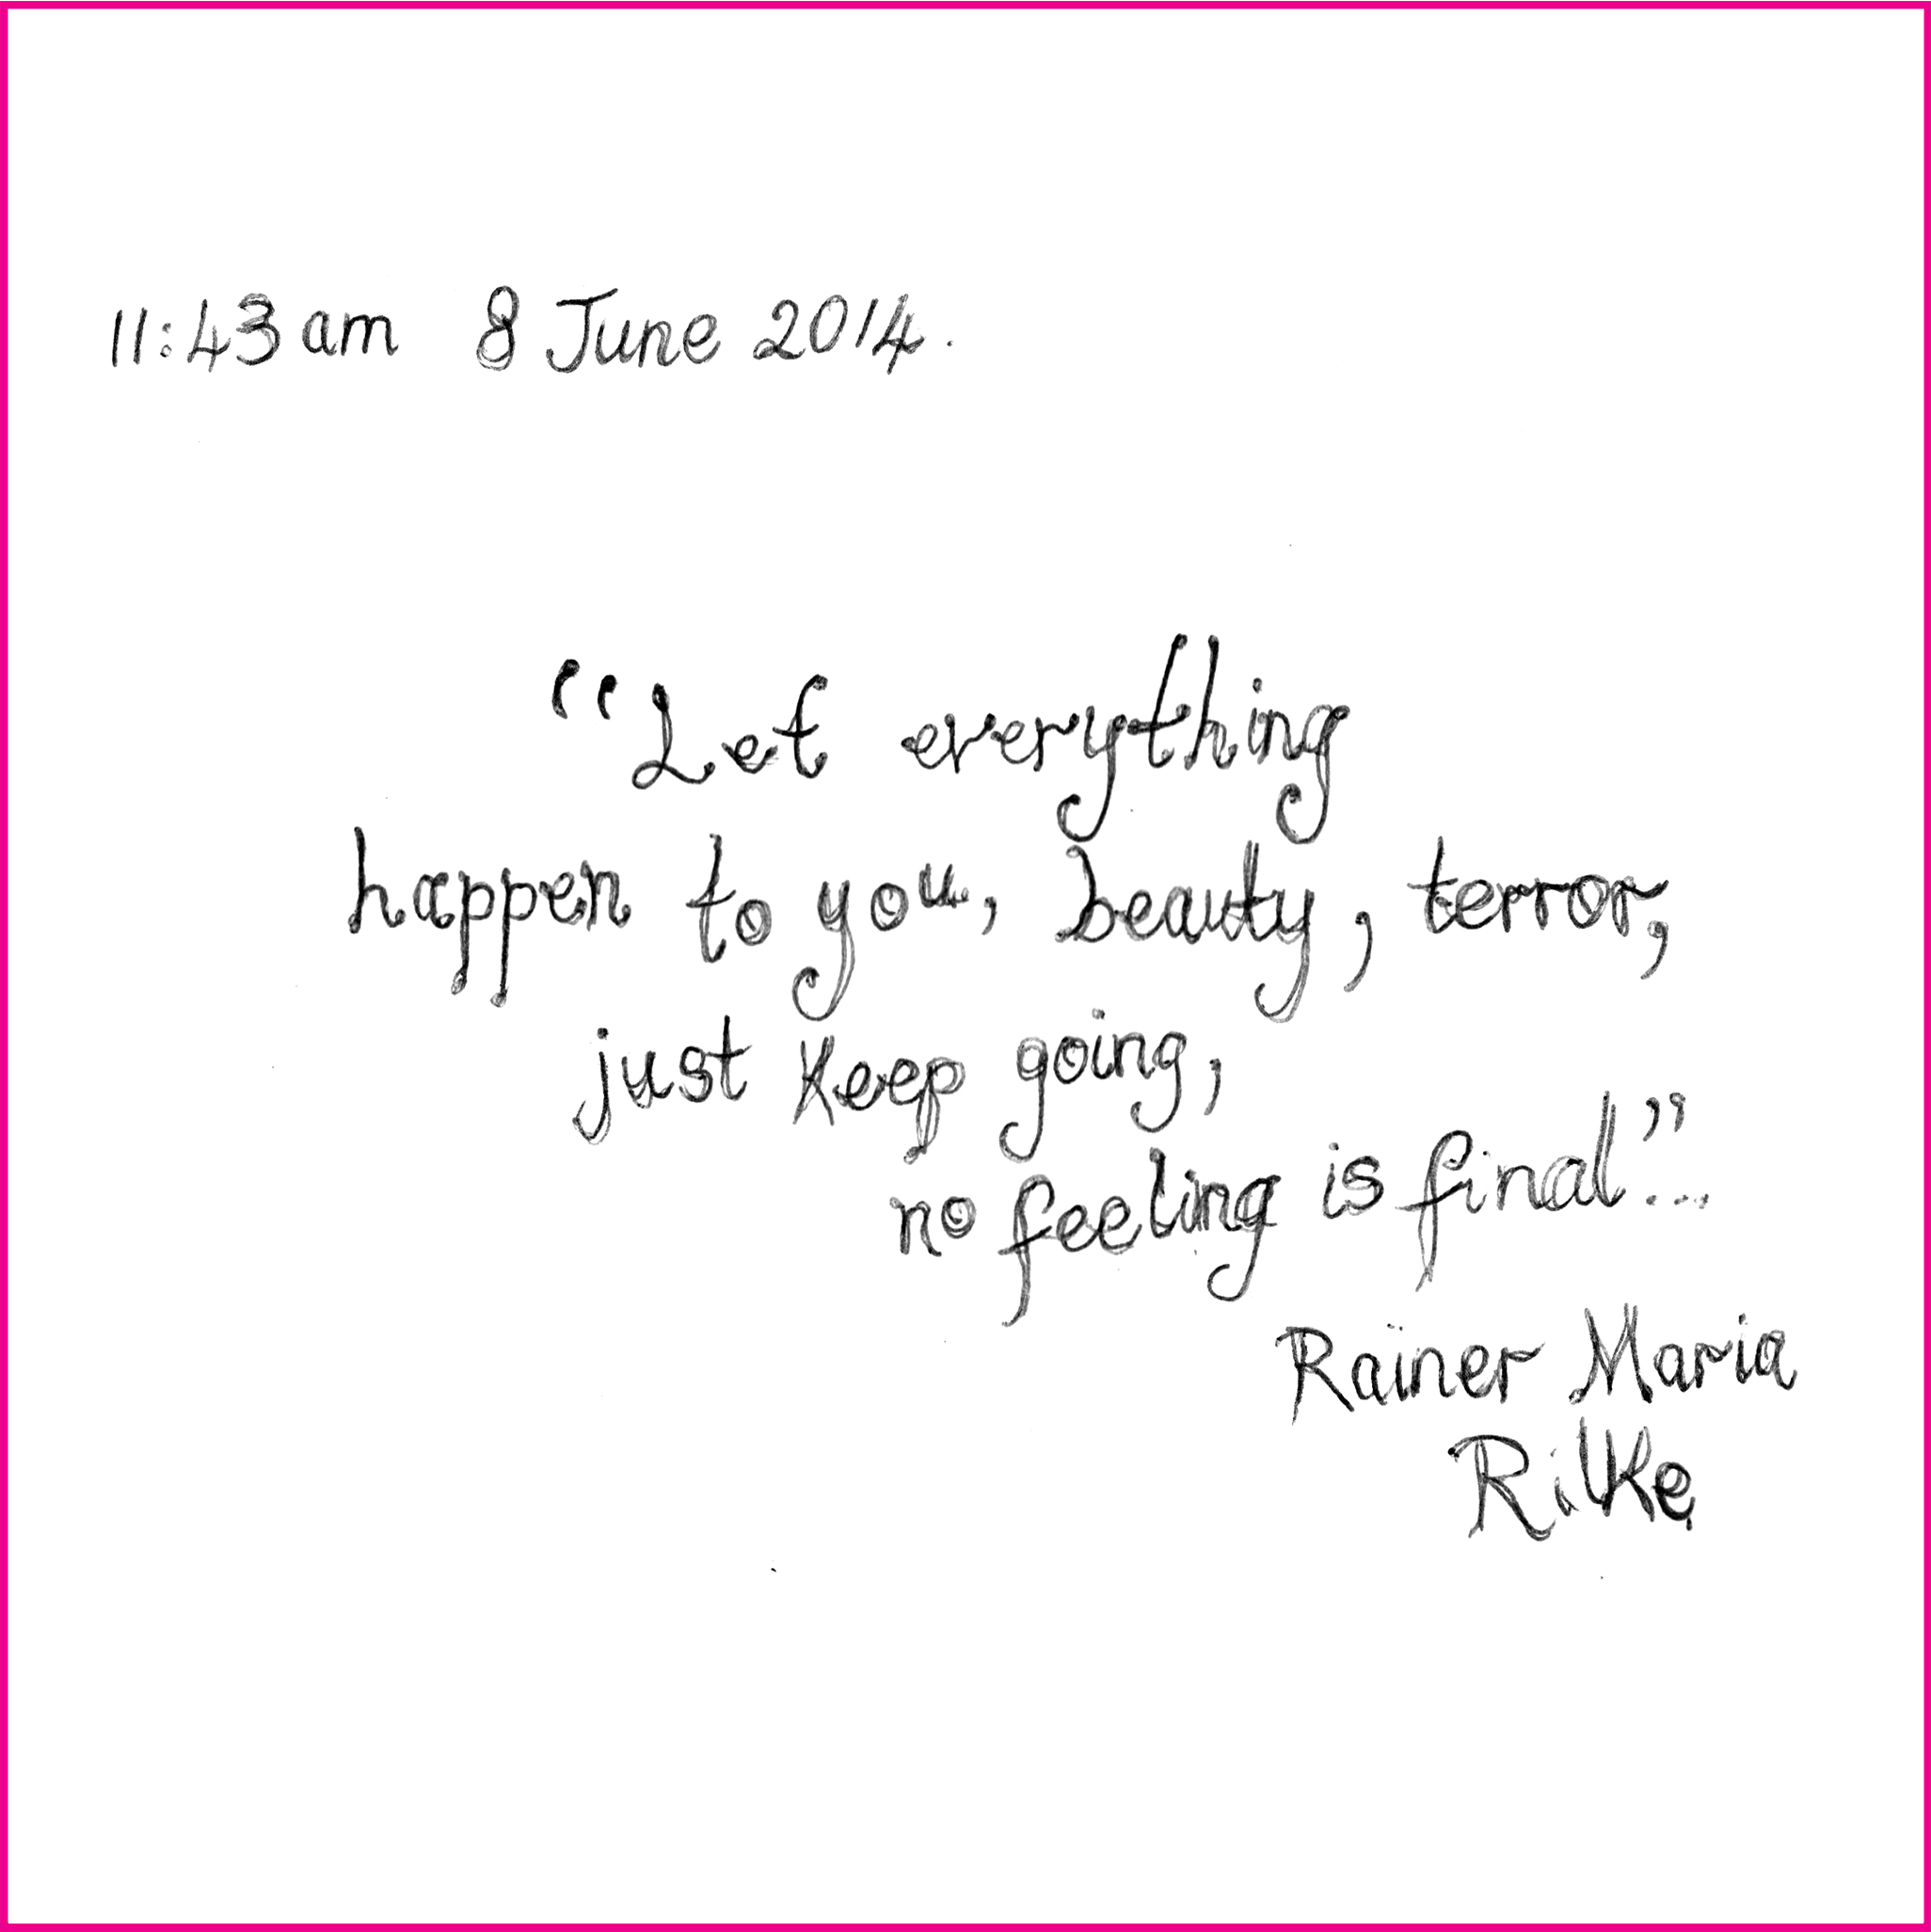 """""""Let everything happen to you, beauty, terror, just keep going,no feeling is final.""""  Rainer Maria Rilke"""